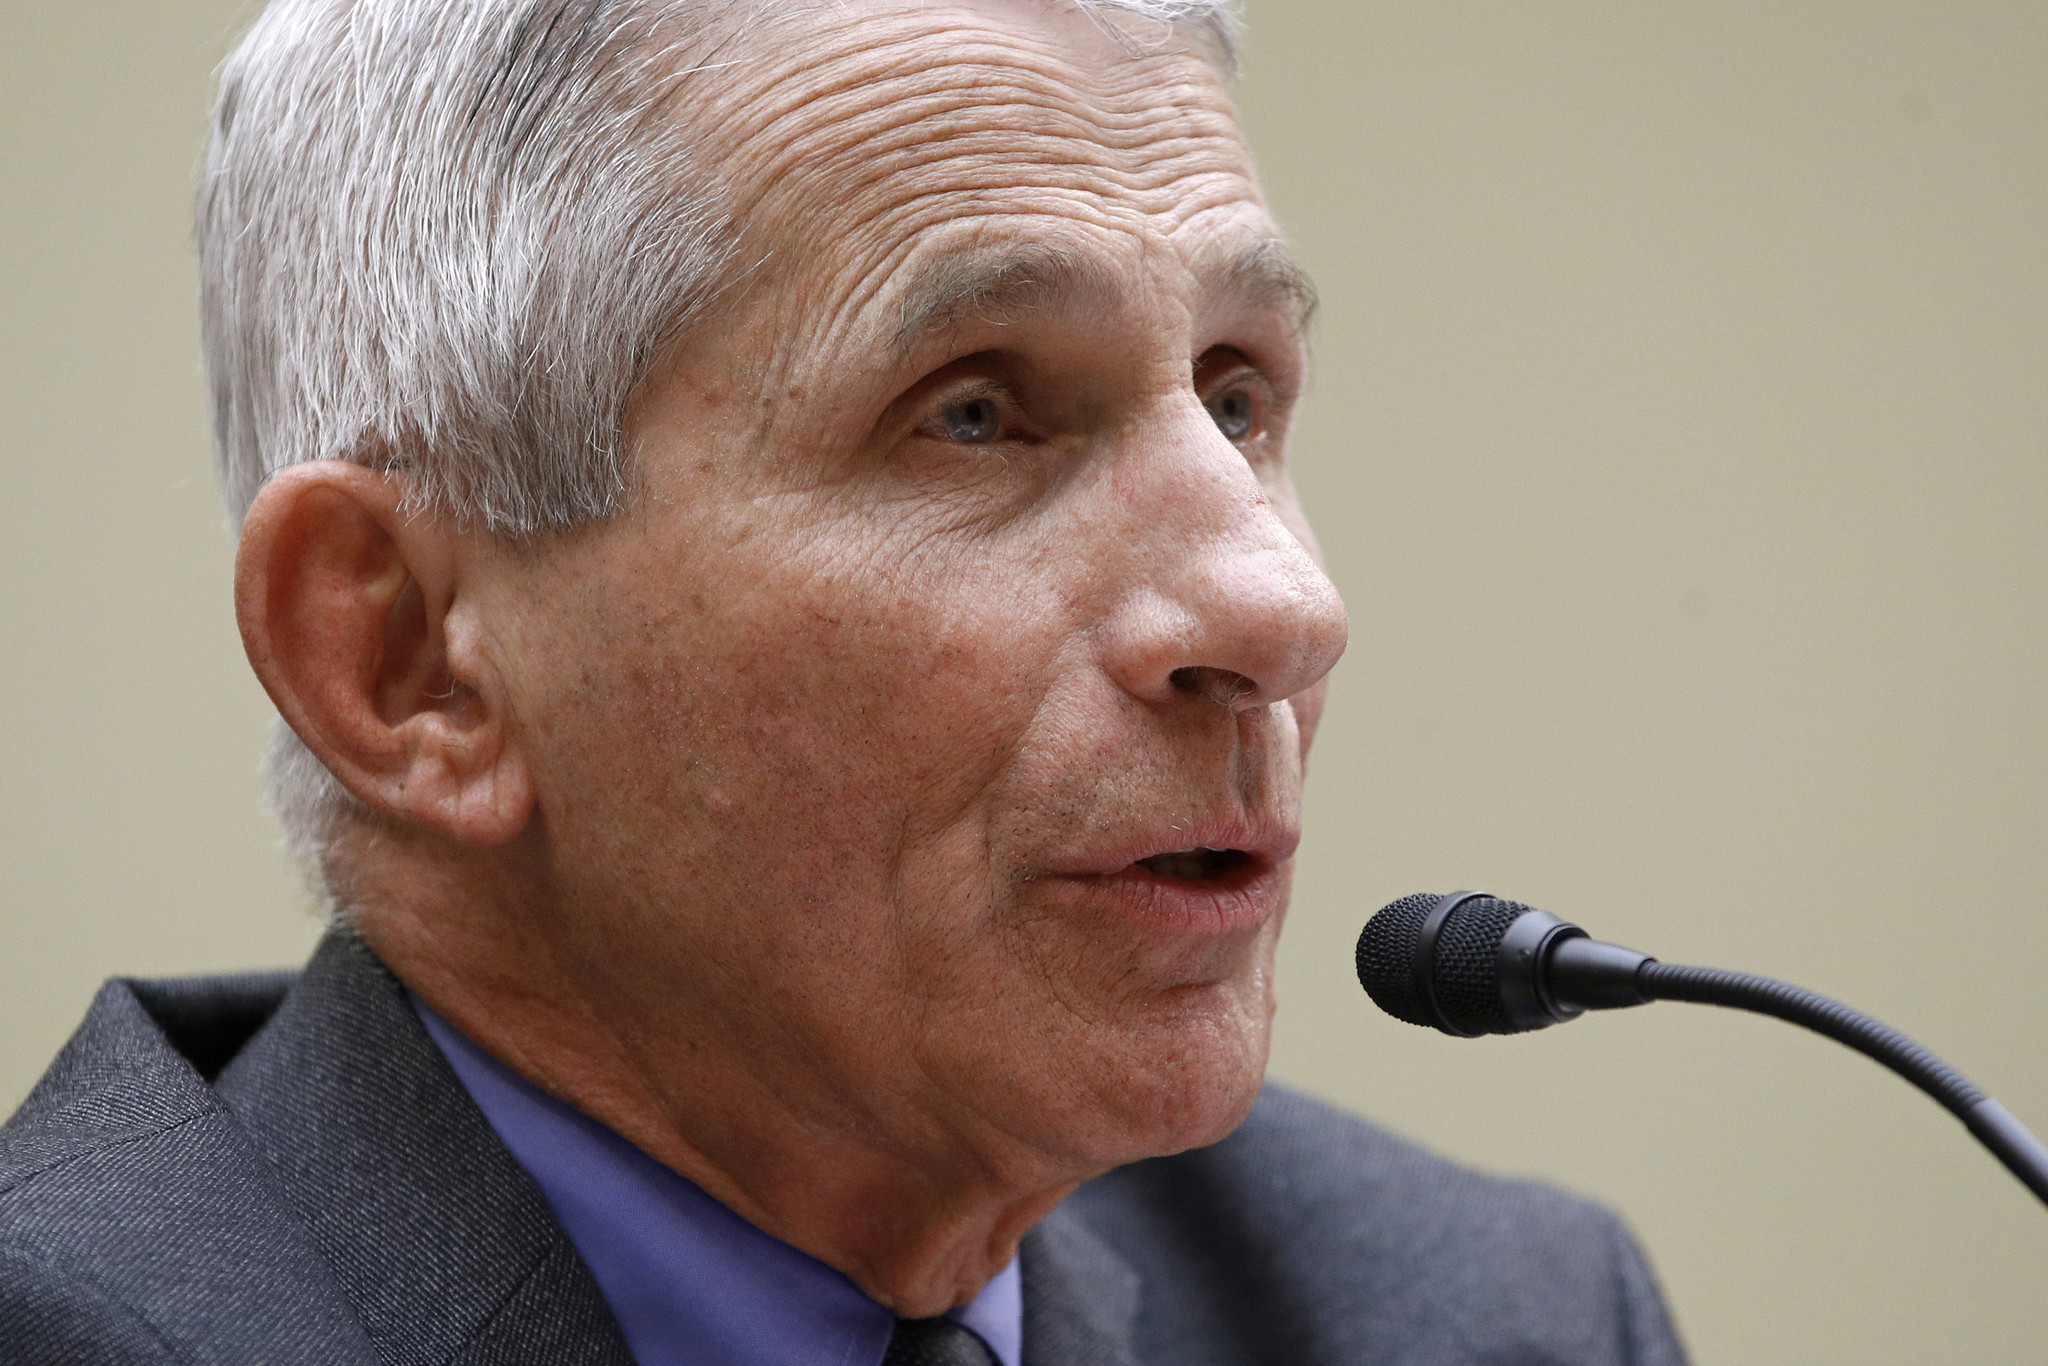 Dr. Fauci: 'I don't understand' why there's no national stay-at-home order